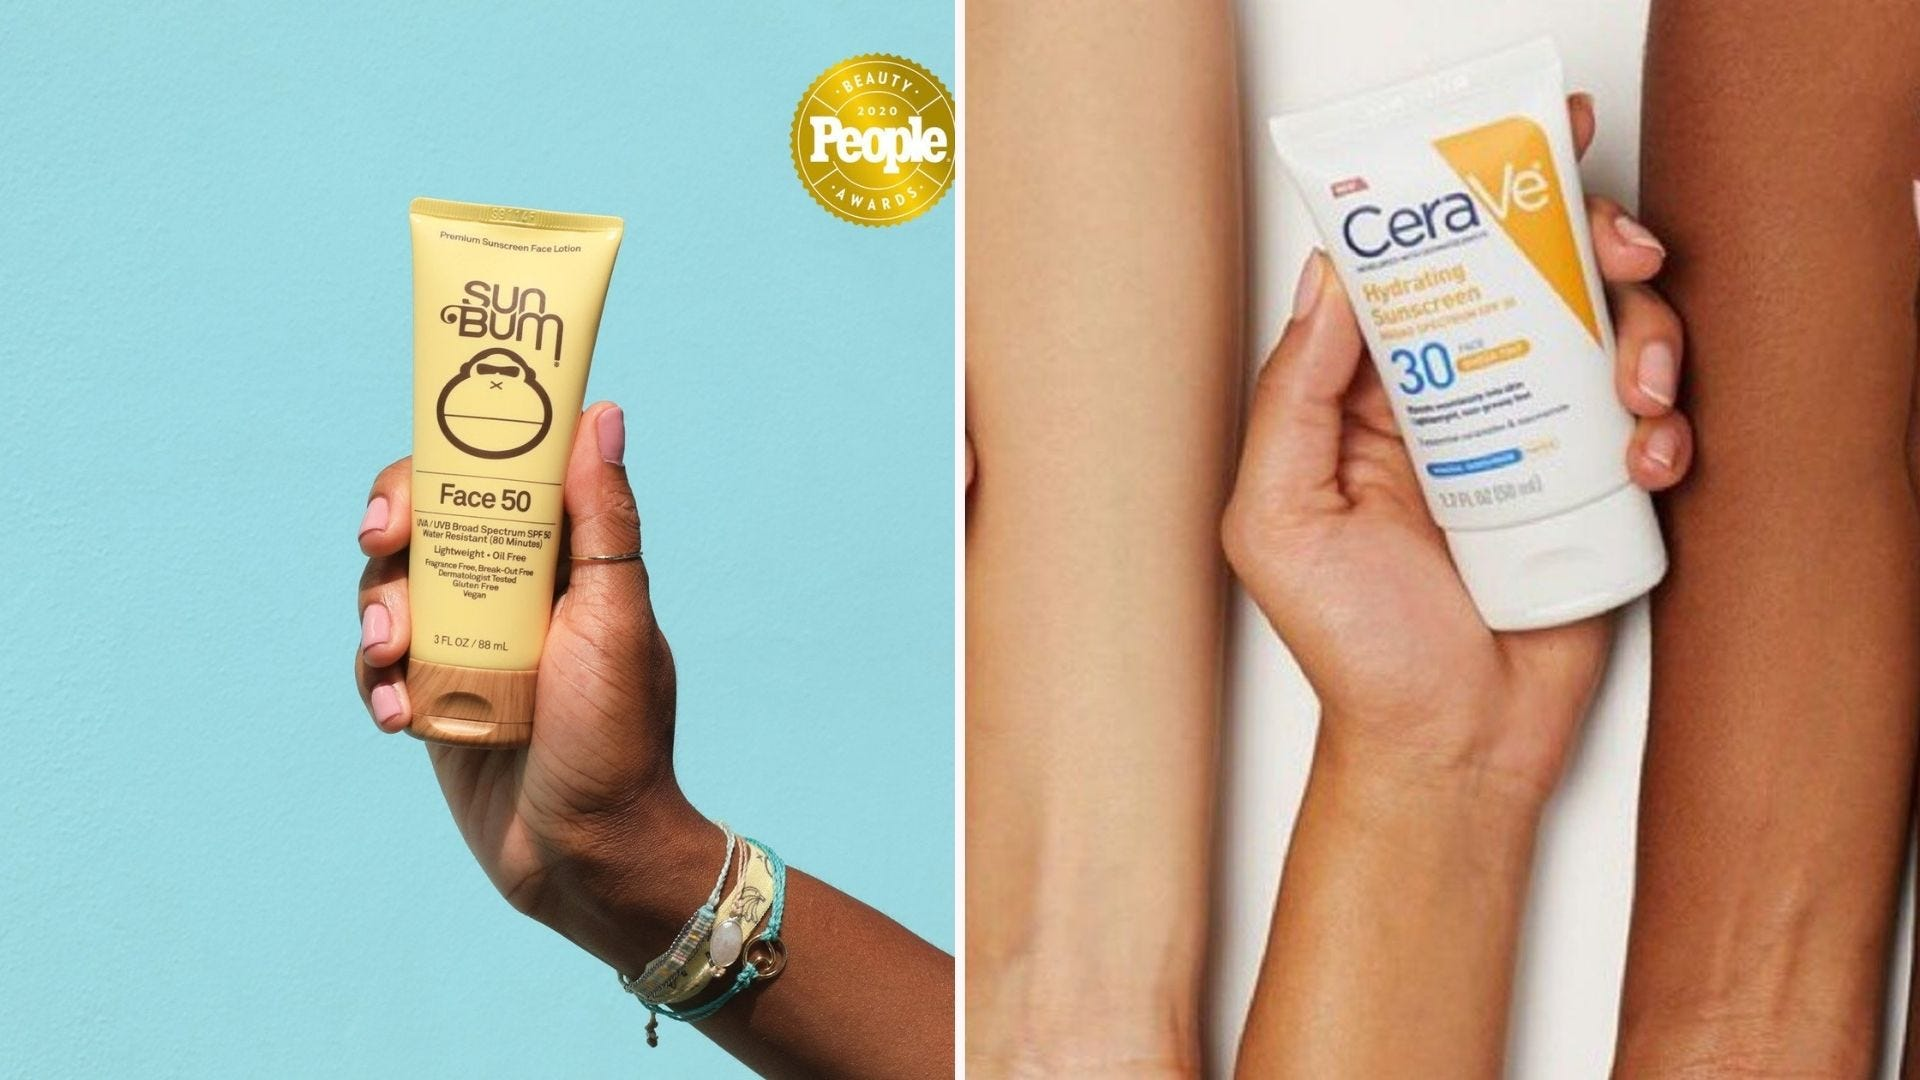 A hand holding a yellow tube of sunscreen; a hand holding a tube of sunscreen against two arms